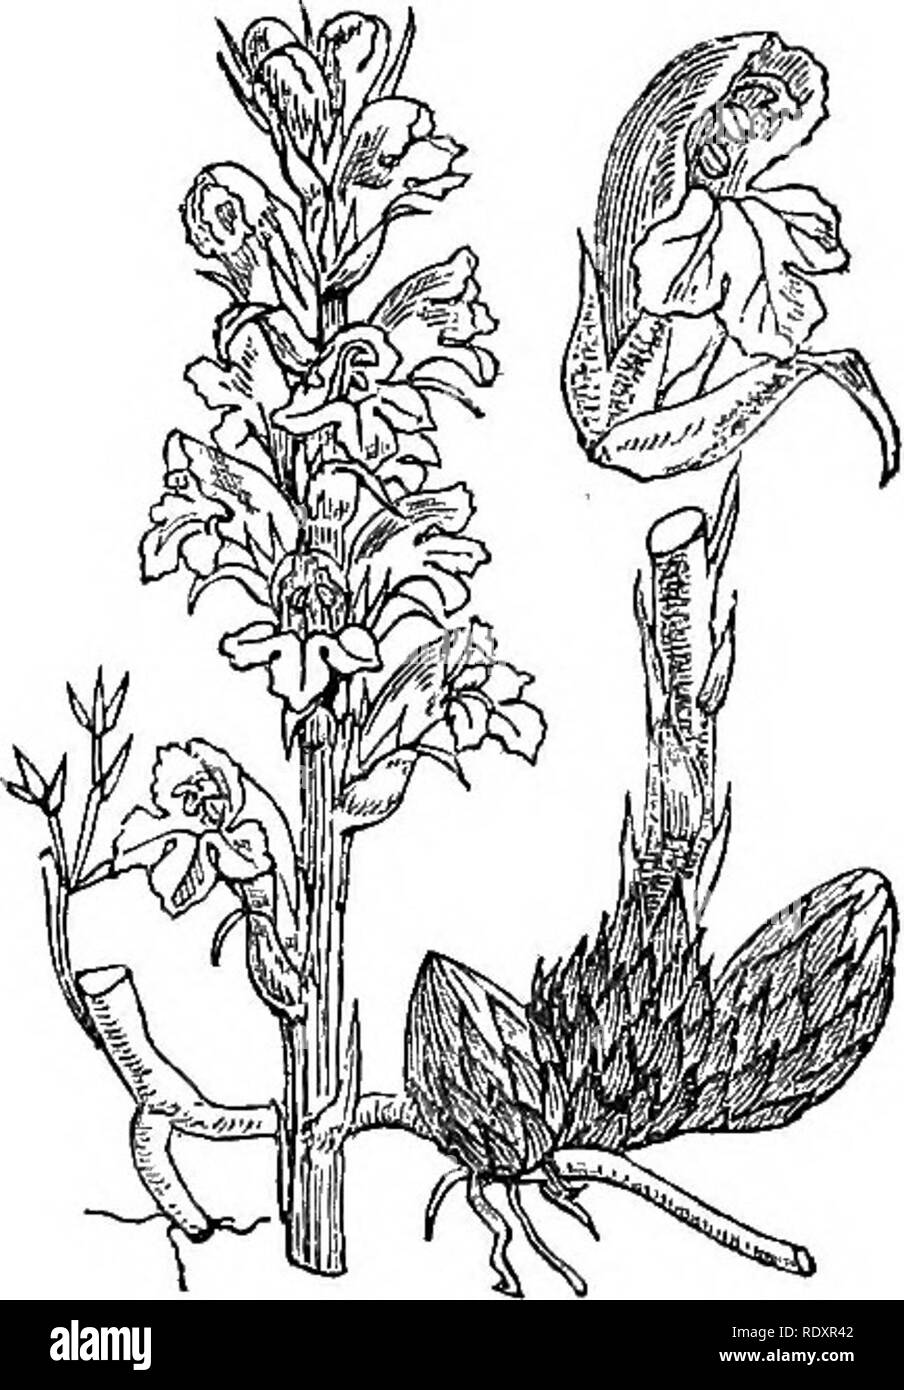 . Illustrations of the British flora: a series of wood engravings, with dissections, of British plants. Botany; Botany. 174. Please note that these images are extracted from scanned page images that may have been digitally enhanced for readability - coloration and appearance of these illustrations may not perfectly resemble the original work.. Fitch, W. H. (Walter Hood), 1817-1892; Smith, Worthington George, 1835-1917; Bentham, George, 1800-1884. Handbook of the British flora. London, L. Reeve & Co. - Stock Image